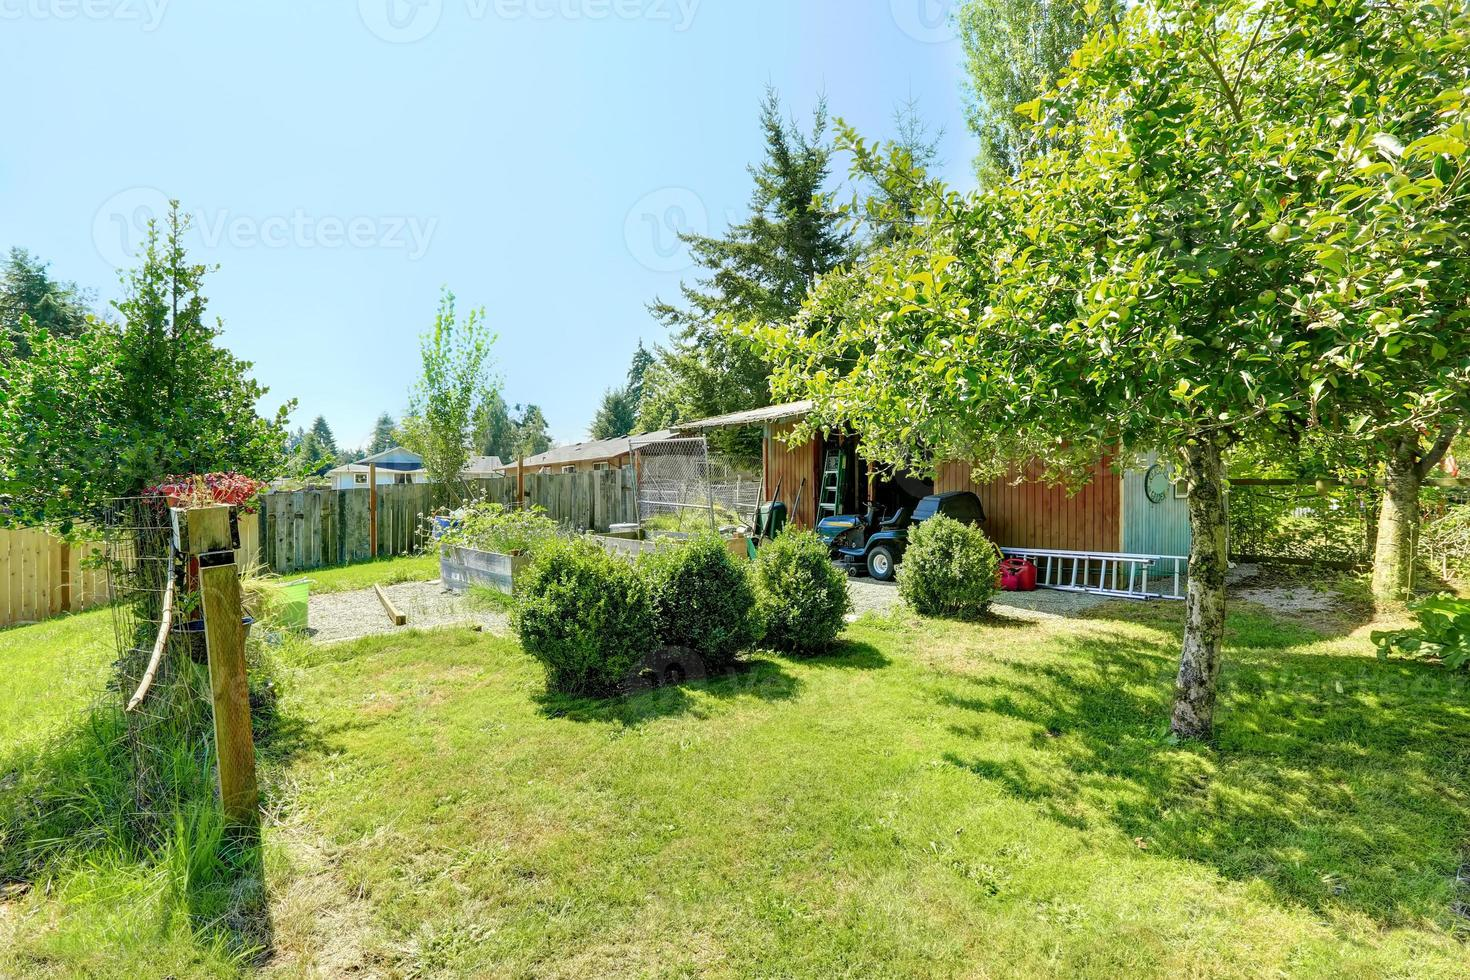 Countryside house backyard with shed and garden photo